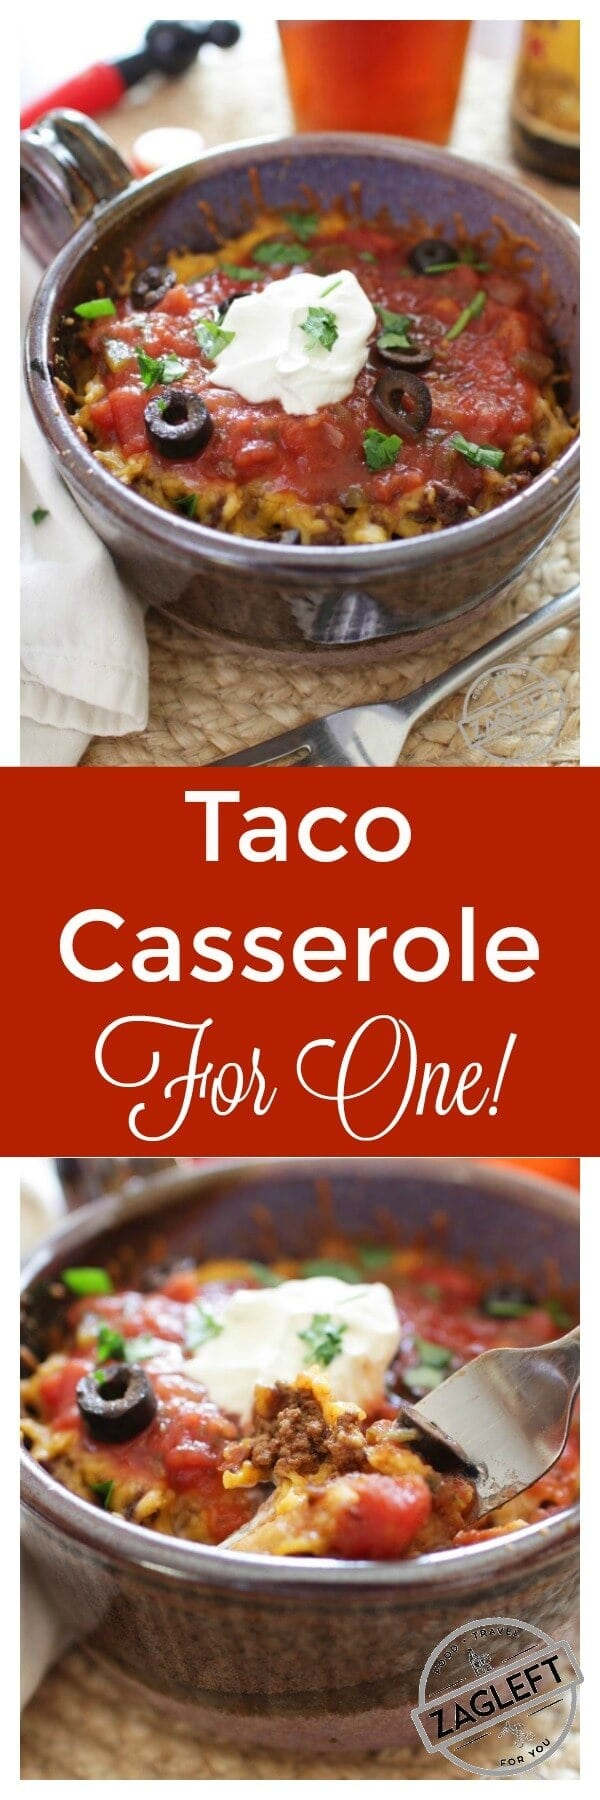 Taco Casserole For One – think of it as a Mexican Lasagna. Spicy ground beef and shredded cheddar cheese between crisp layers of crunchy tostadas and baked in the oven. Top with salsa, sour cream and black olives. An easy to assemble single serving recipe. One Dish Kitchen